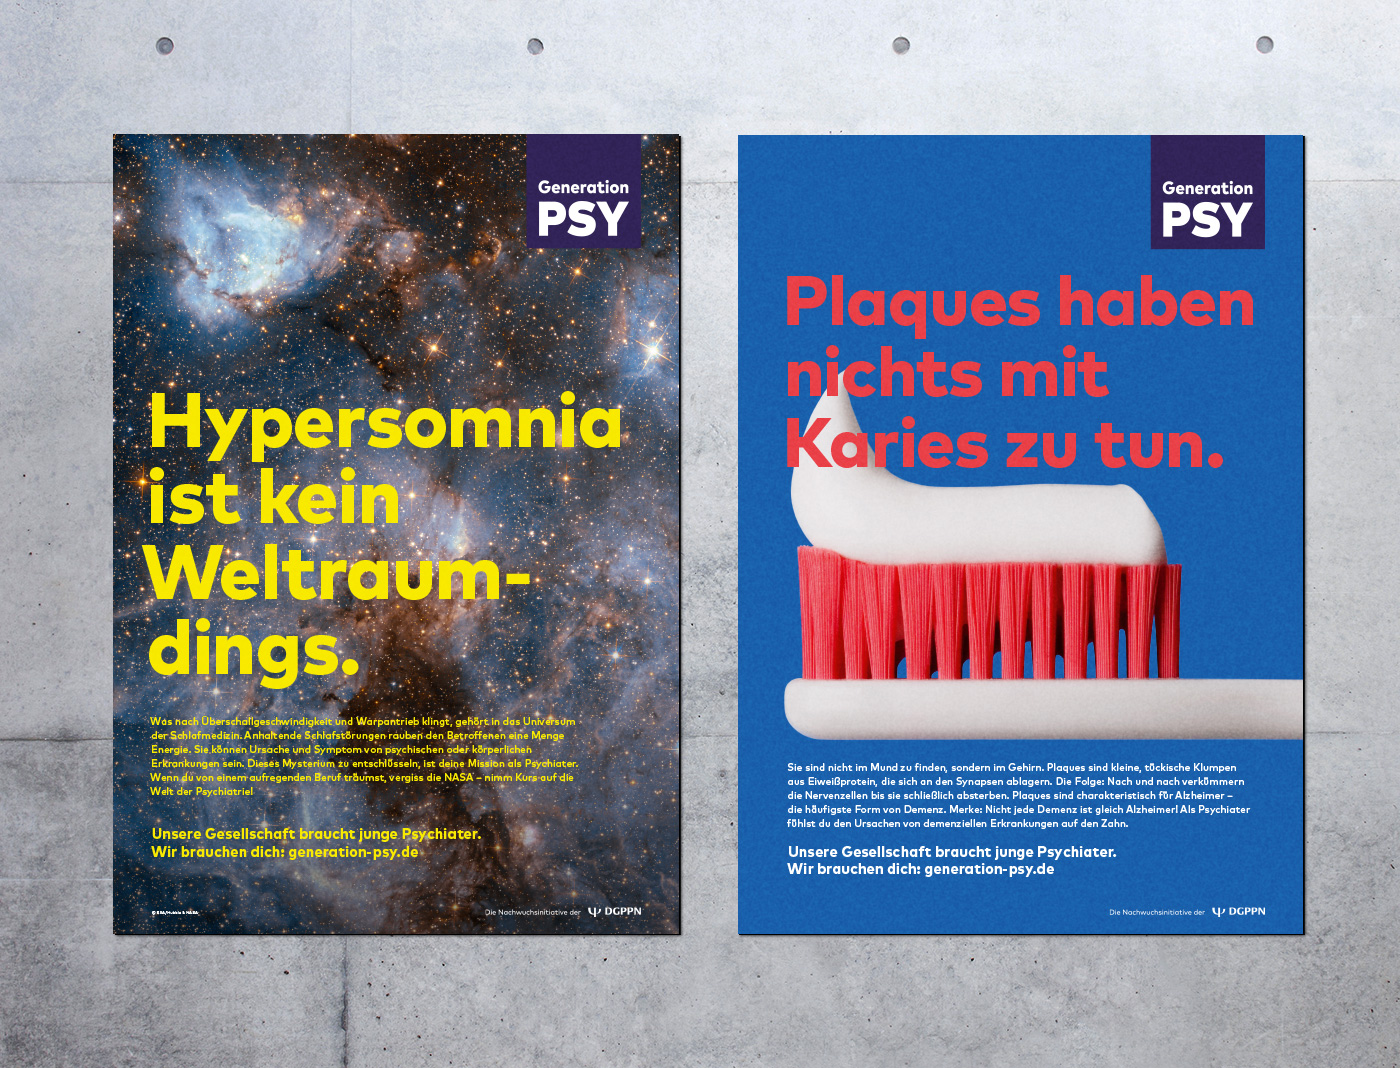 PSY-BETON-hypersomnia-plaques-Plakate